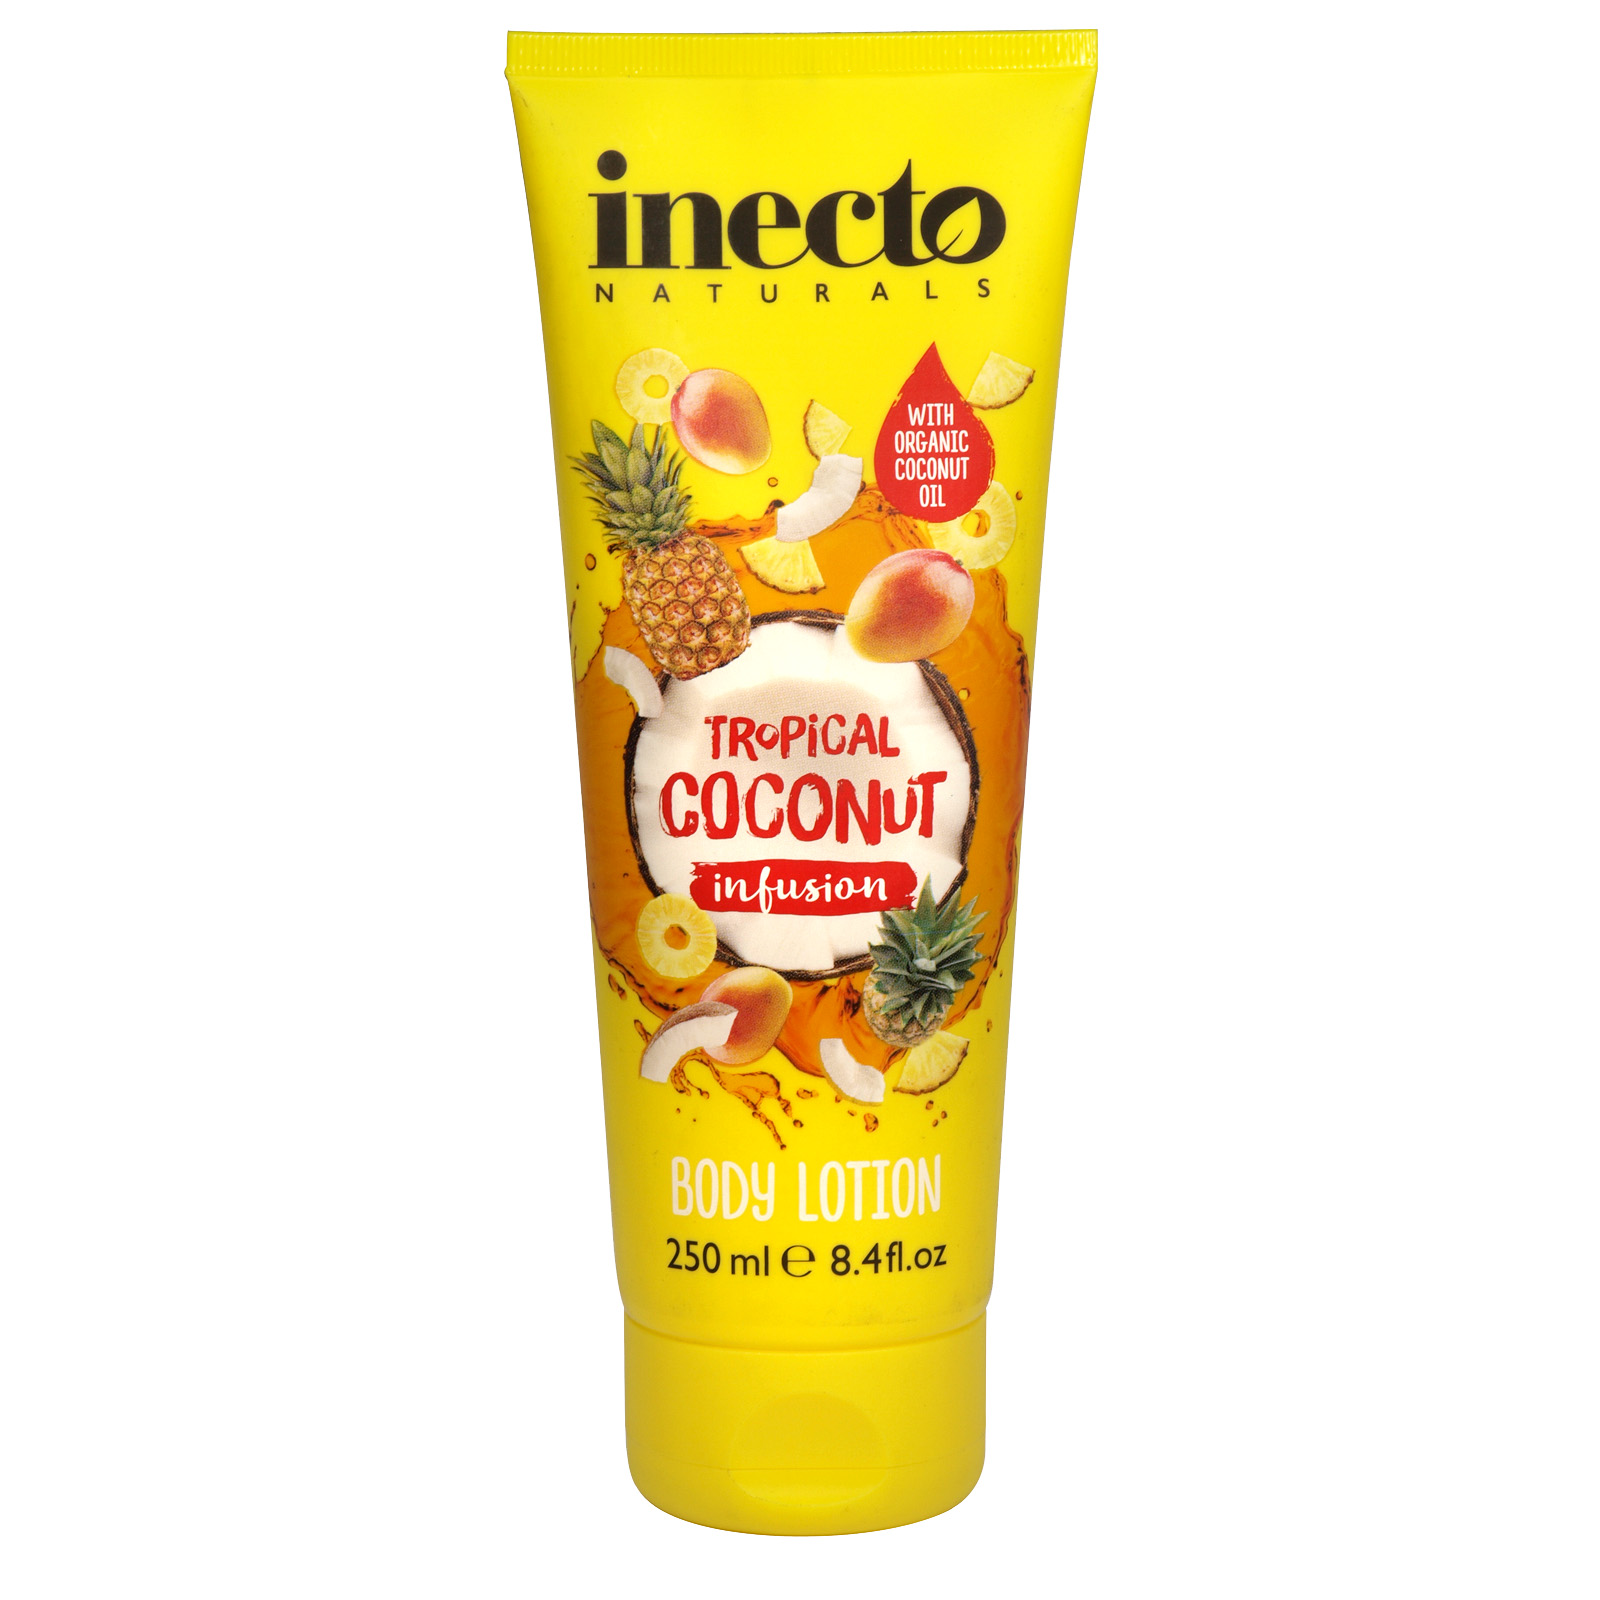 INECTO NATURALS 250ML BODY LOTION TROPICAL COCONUT INFUSION X6